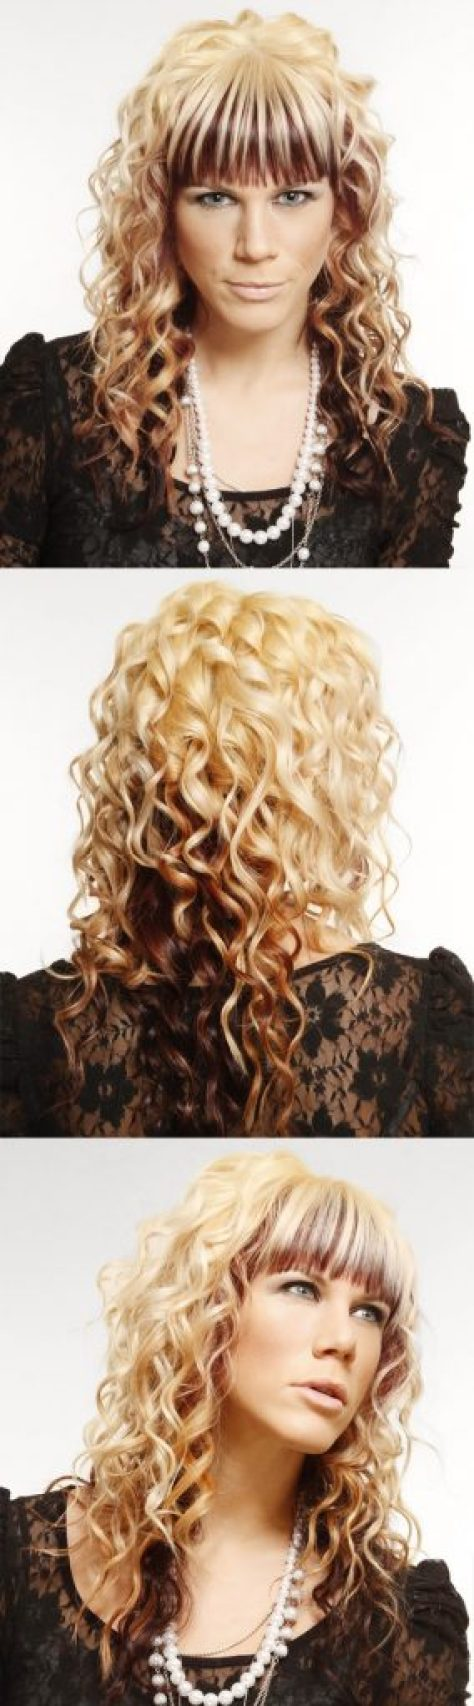 Light Blonde Curly Hair with Bangs